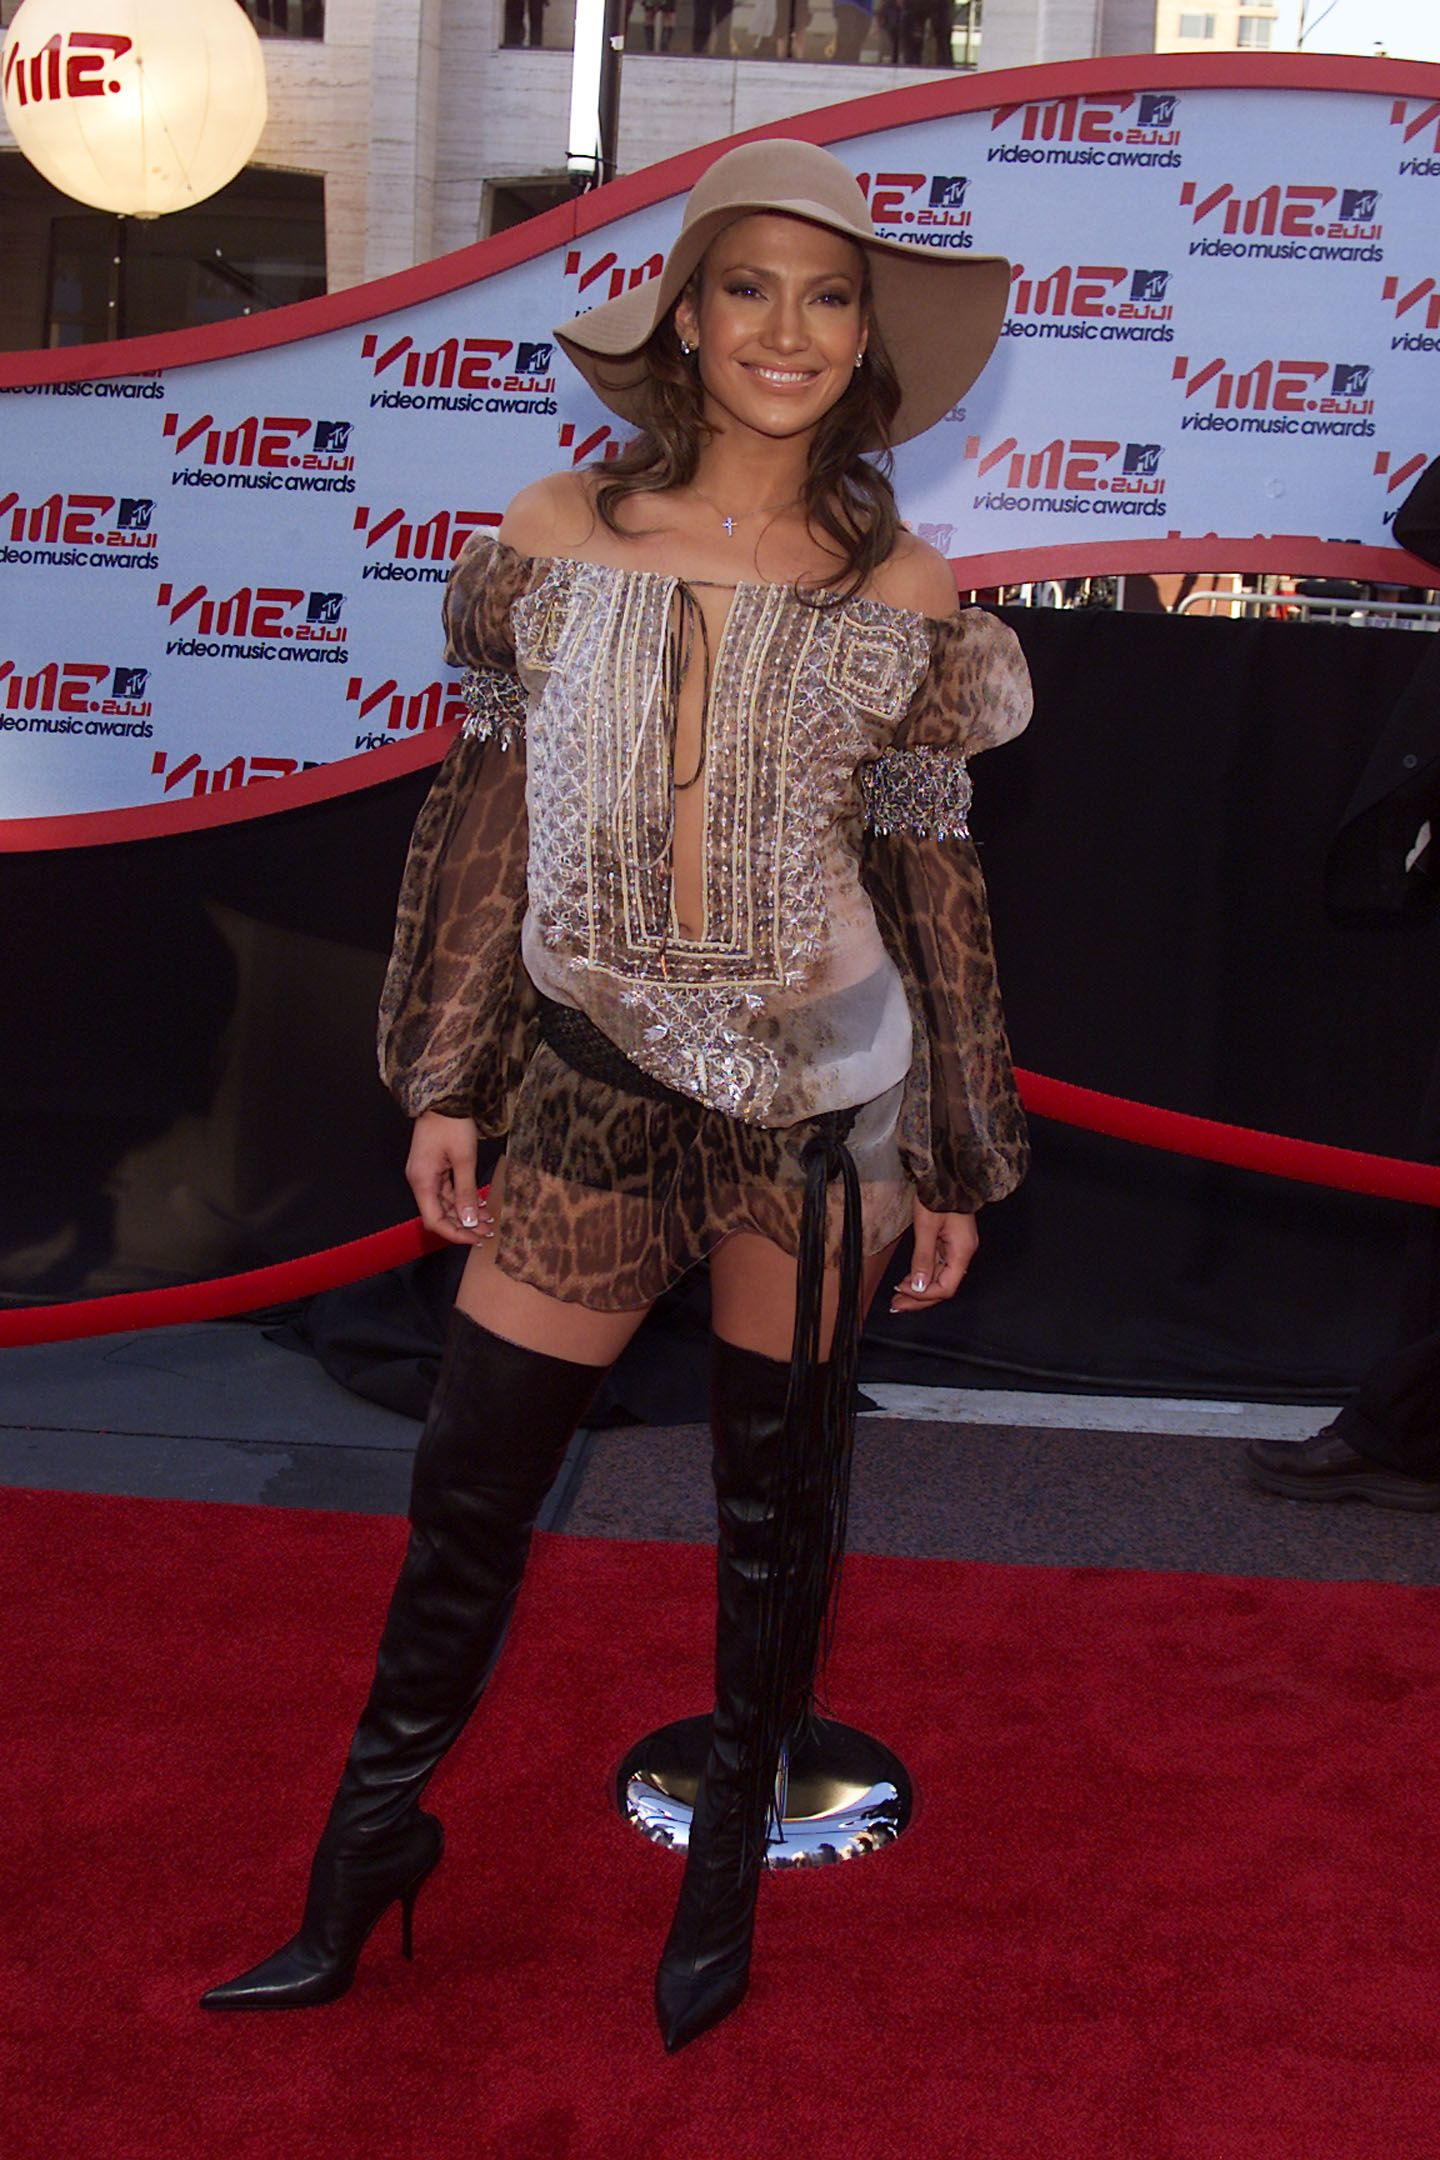 60 Celebrity Outfits From The Early 2000s That Did Not Age Well